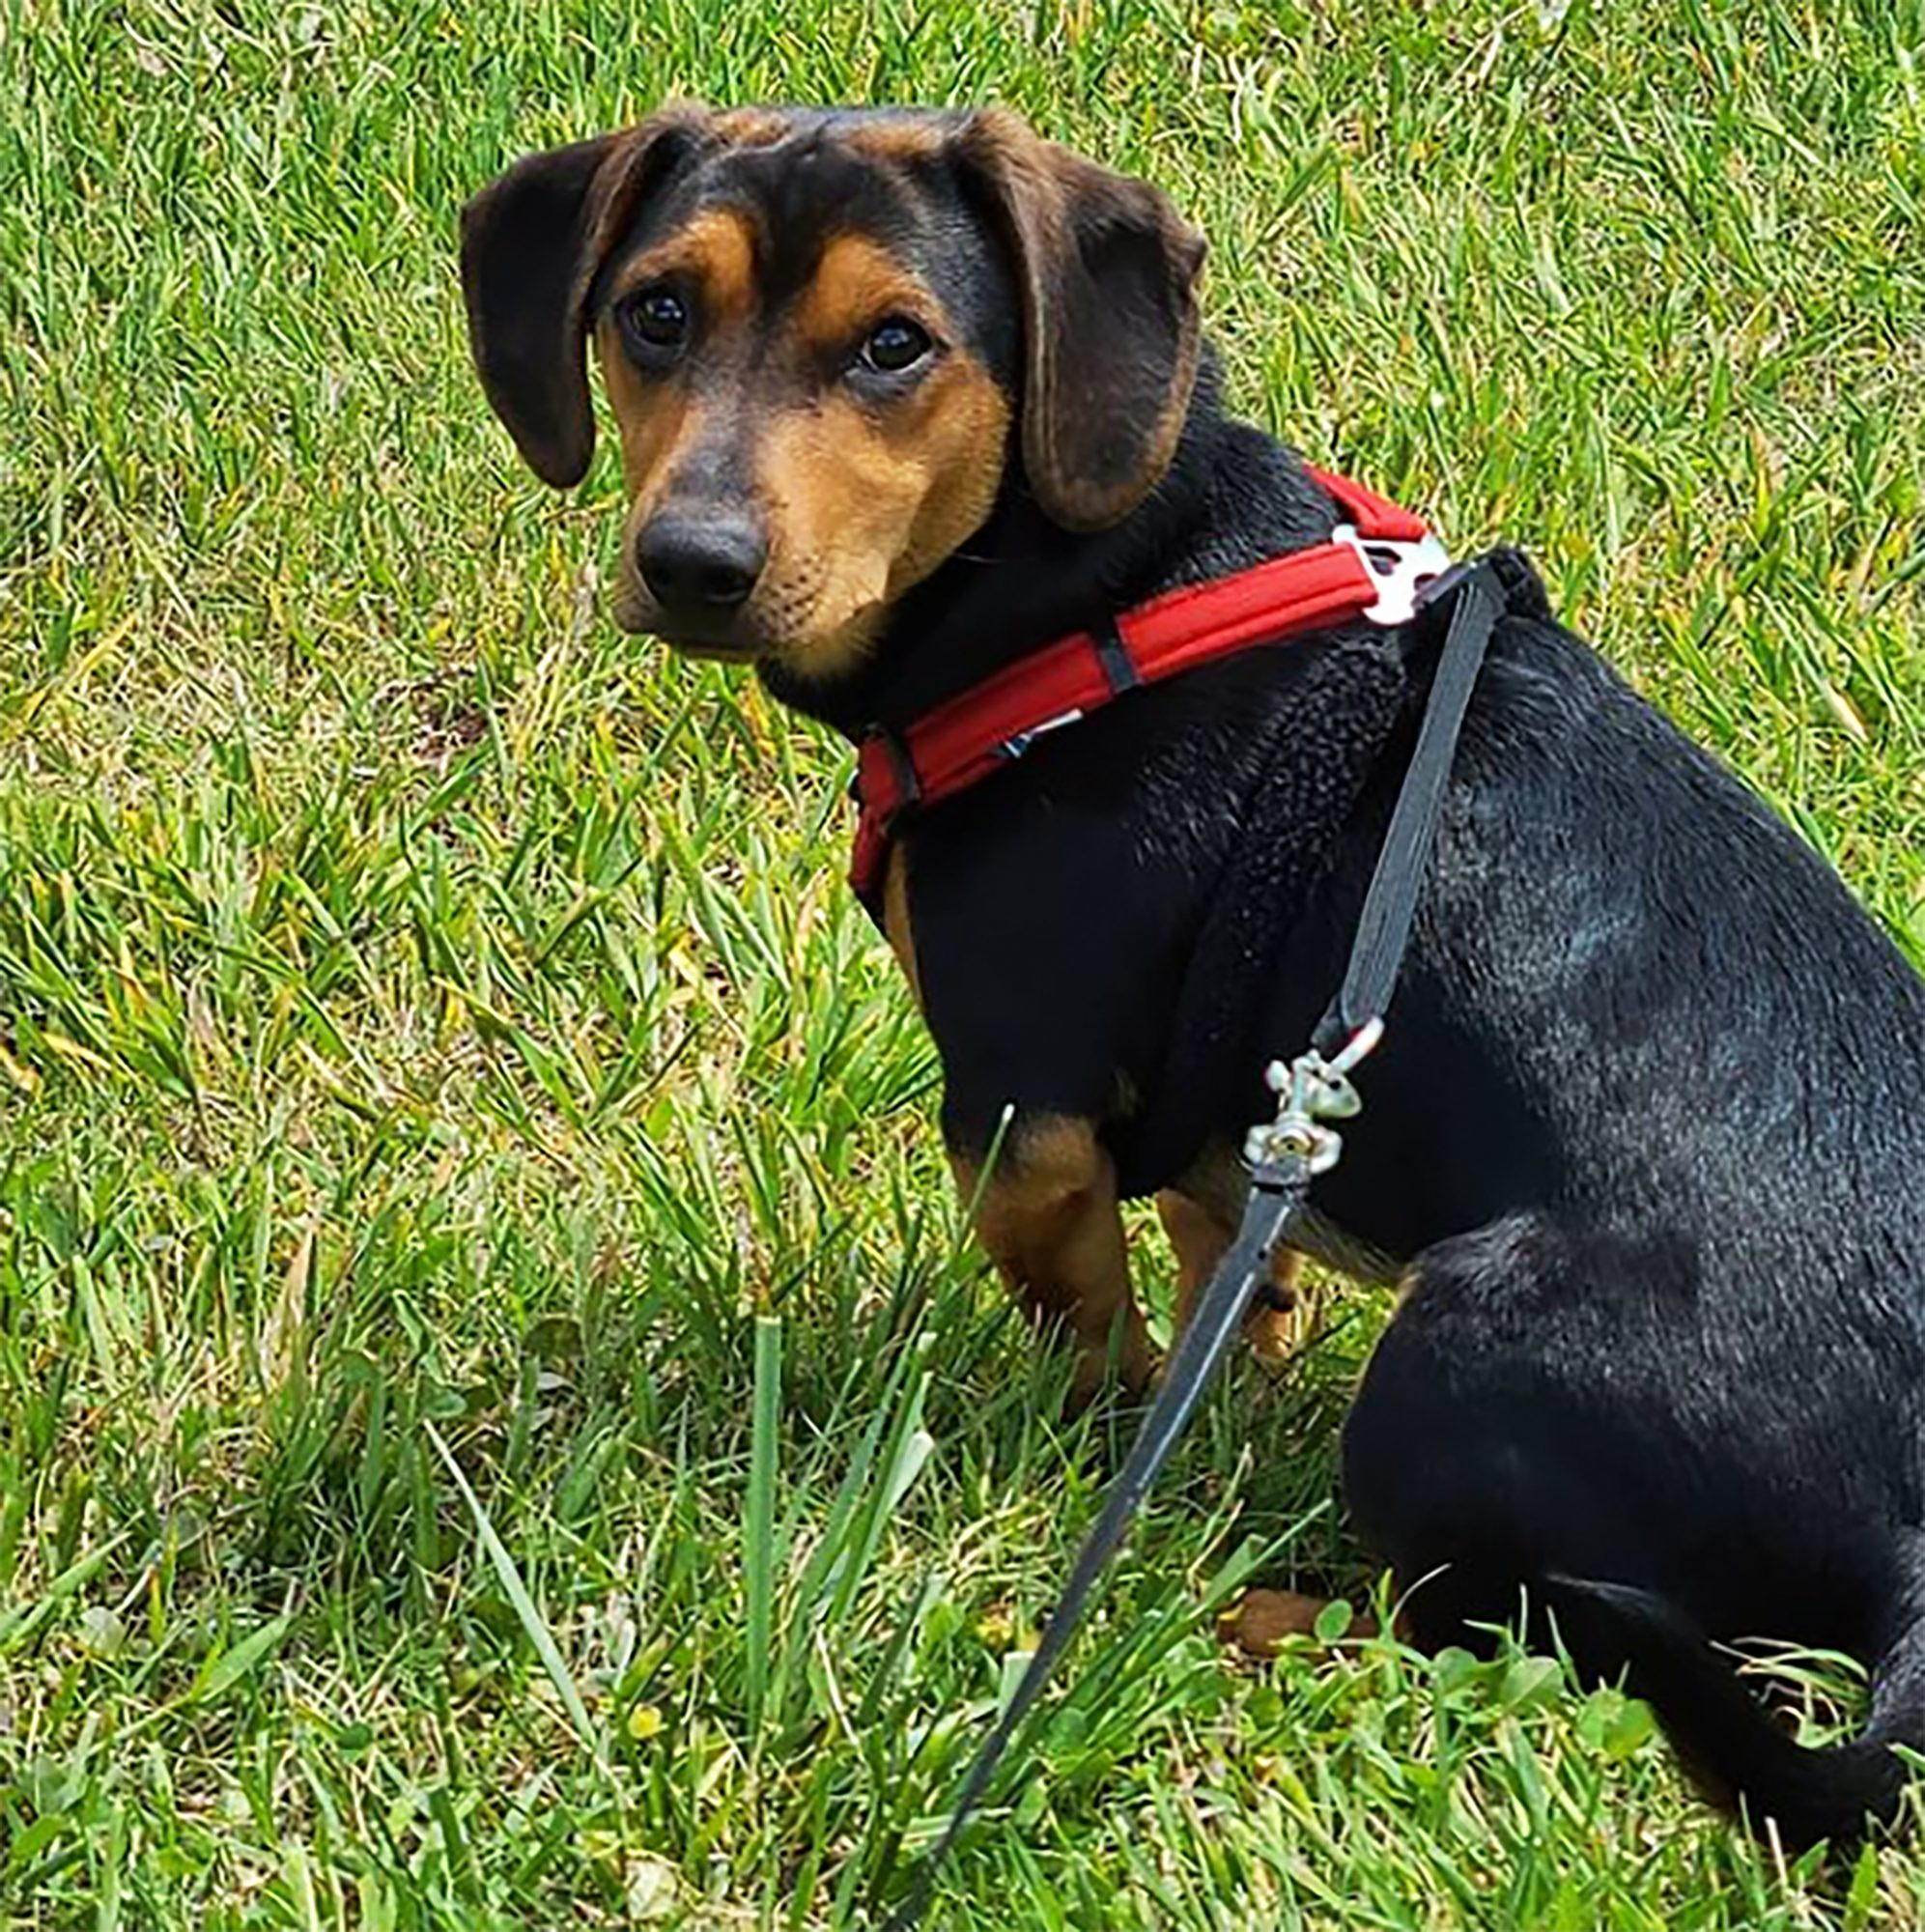 black and tan doxle sitting in the grass wearing a red harness